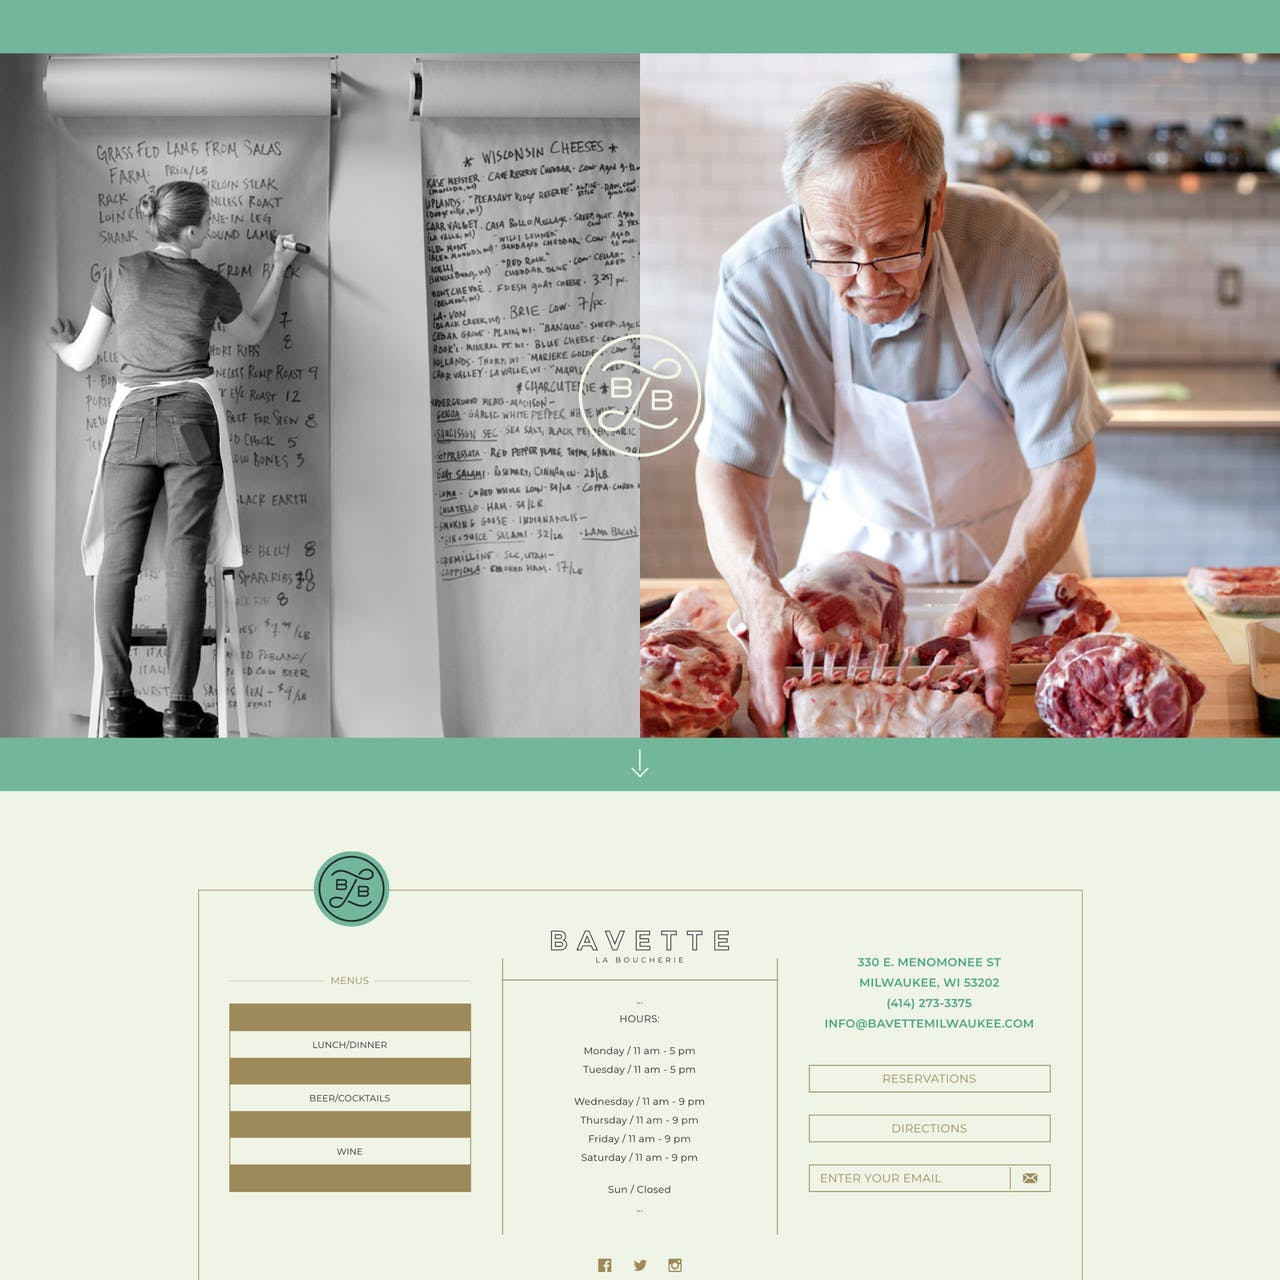 Bavette La Boucherie Website Screenshot